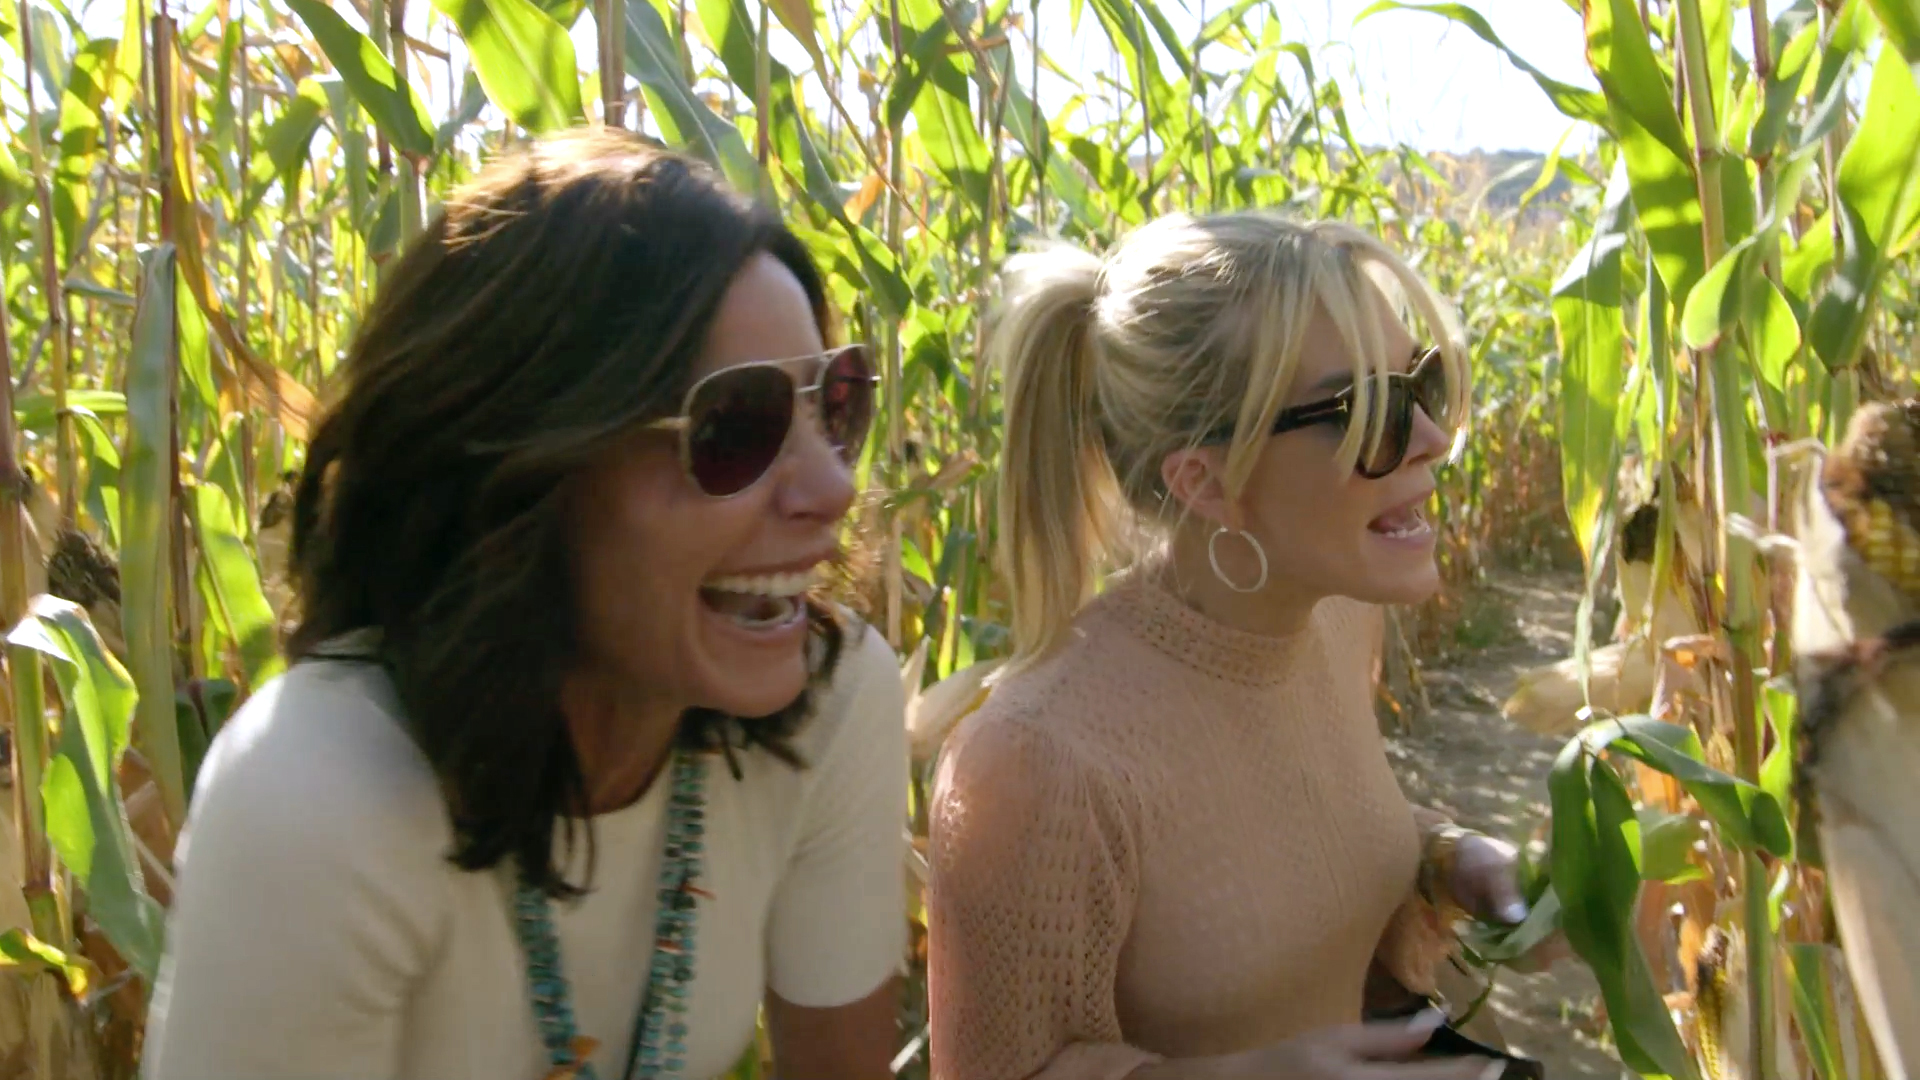 The Real Housewives of New York City Get Lost in a Corn Field